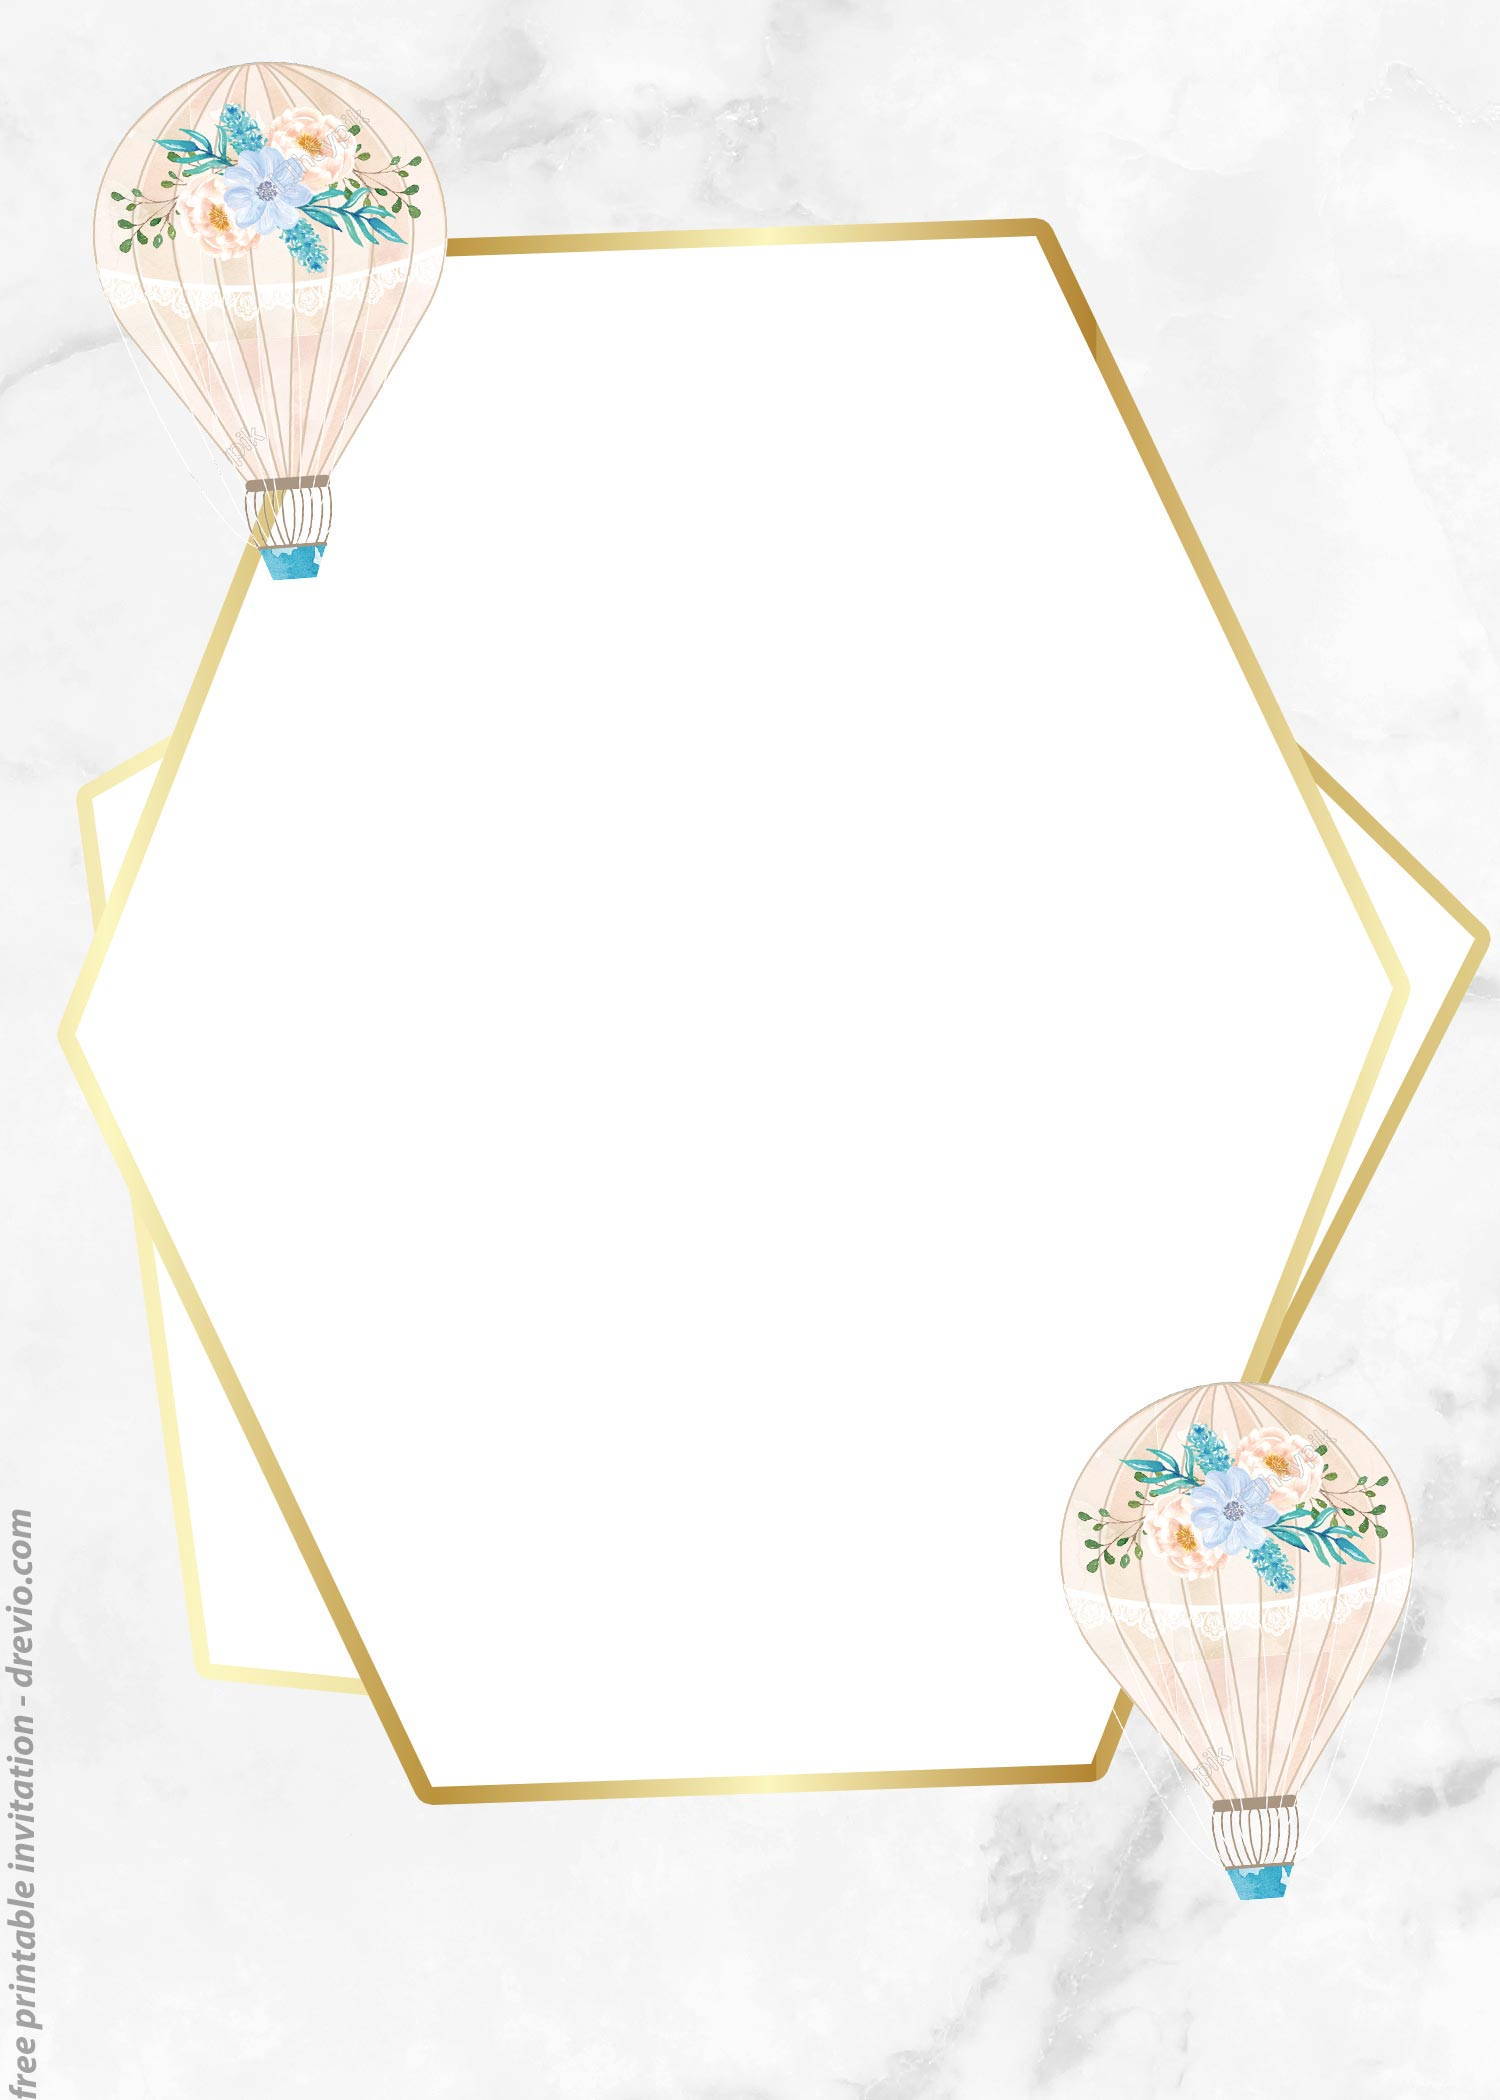 graphic about Oh the Places You'll Go Balloon Printable Template named Cost-free Watercolor Very hot Air Balloon Classic Invitation Templates